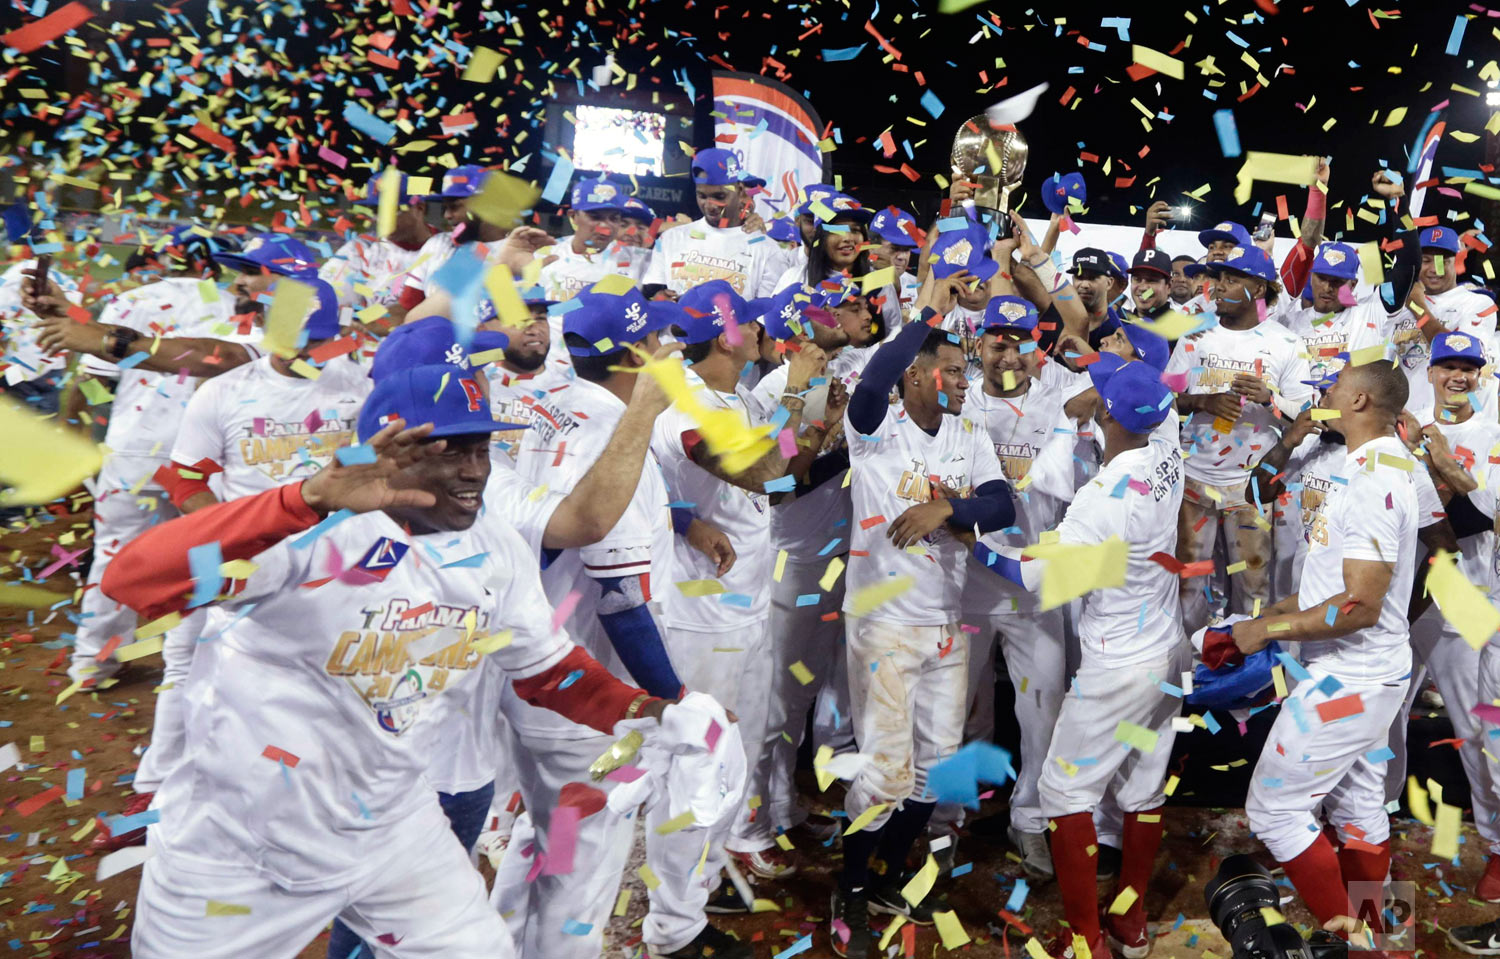 Panama's Los Toros de Herrera baseball players celebrate their 3-0 victory over Cuba's Los Leneros de las Tunas amid confetti at the end of the Caribbean Series baseball tournament's final, championship game at Rod Carew stadium in Panama City, Feb. 10, 2019. (AP Photo/Arnulfo Franco)